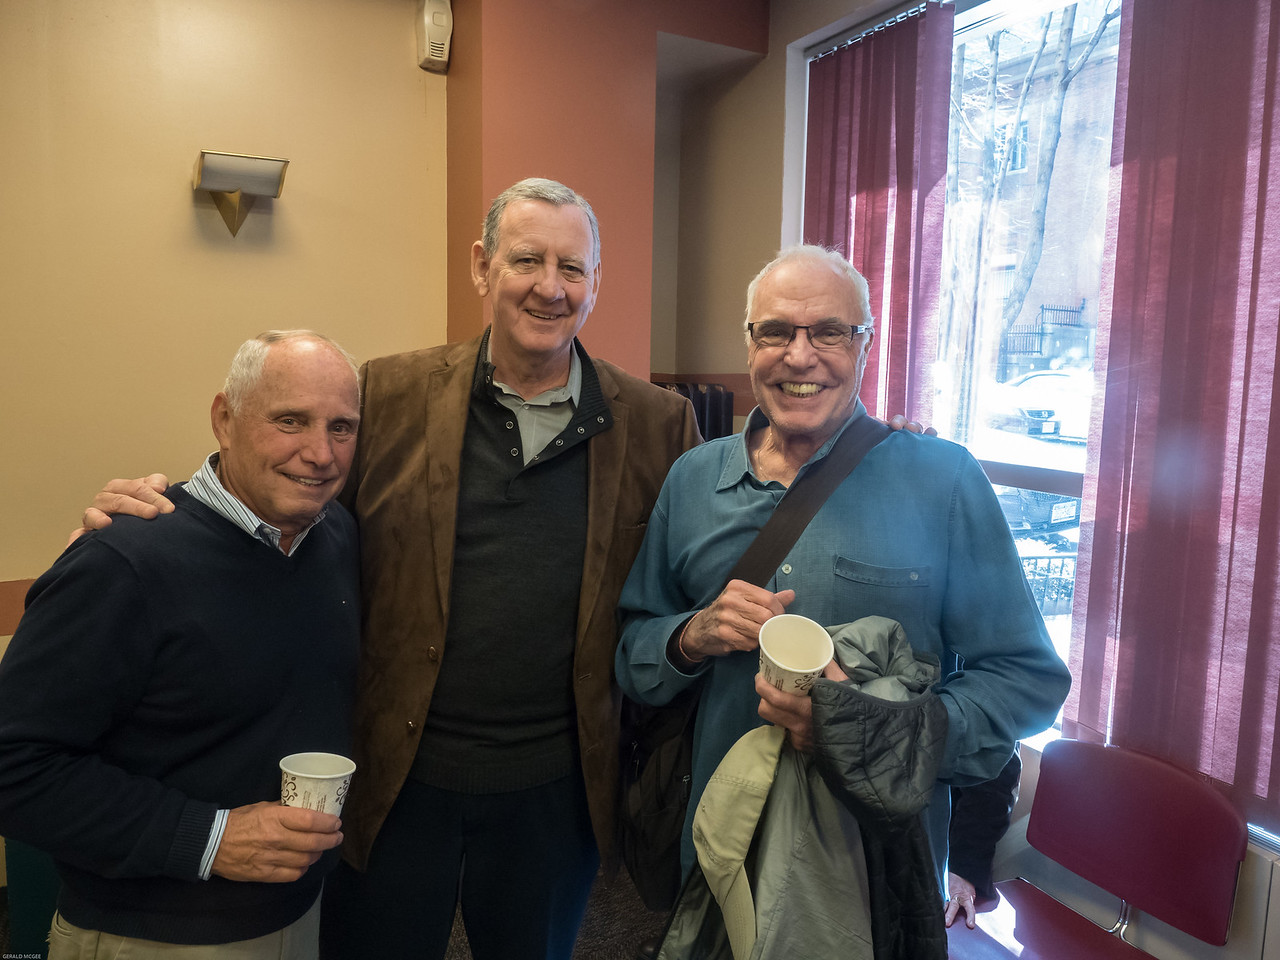 Peter Kerwin, Jim Collins and Jim Garvey, PMA '61